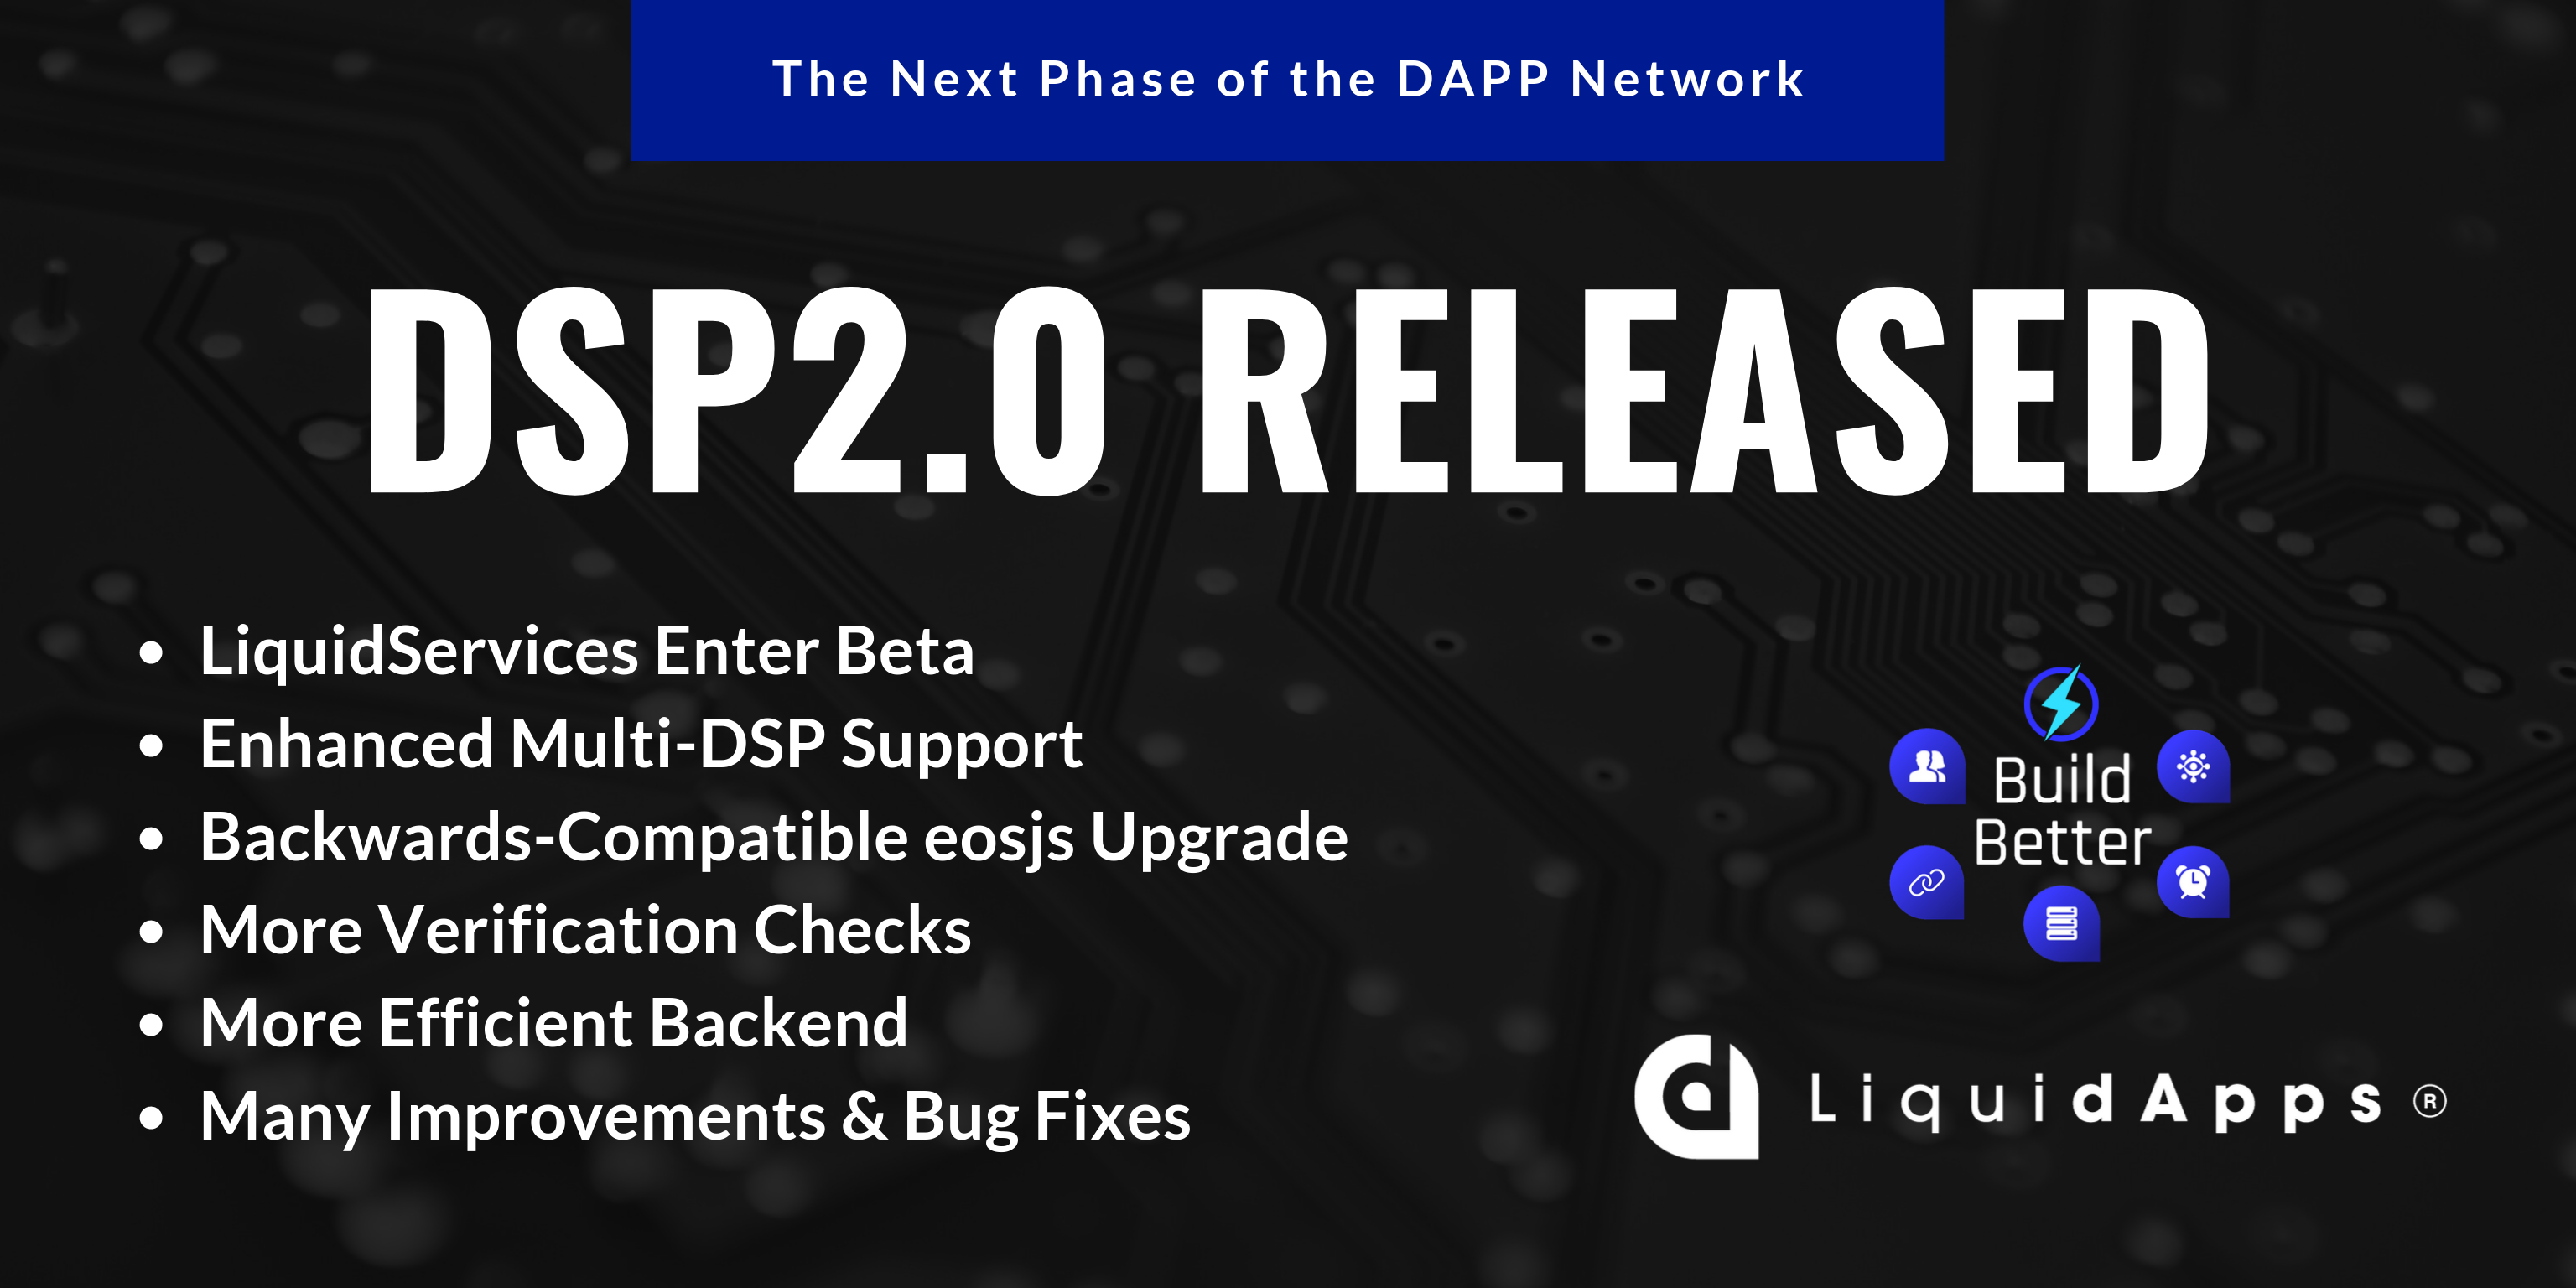 liquidapps-announced-dsp-2-0